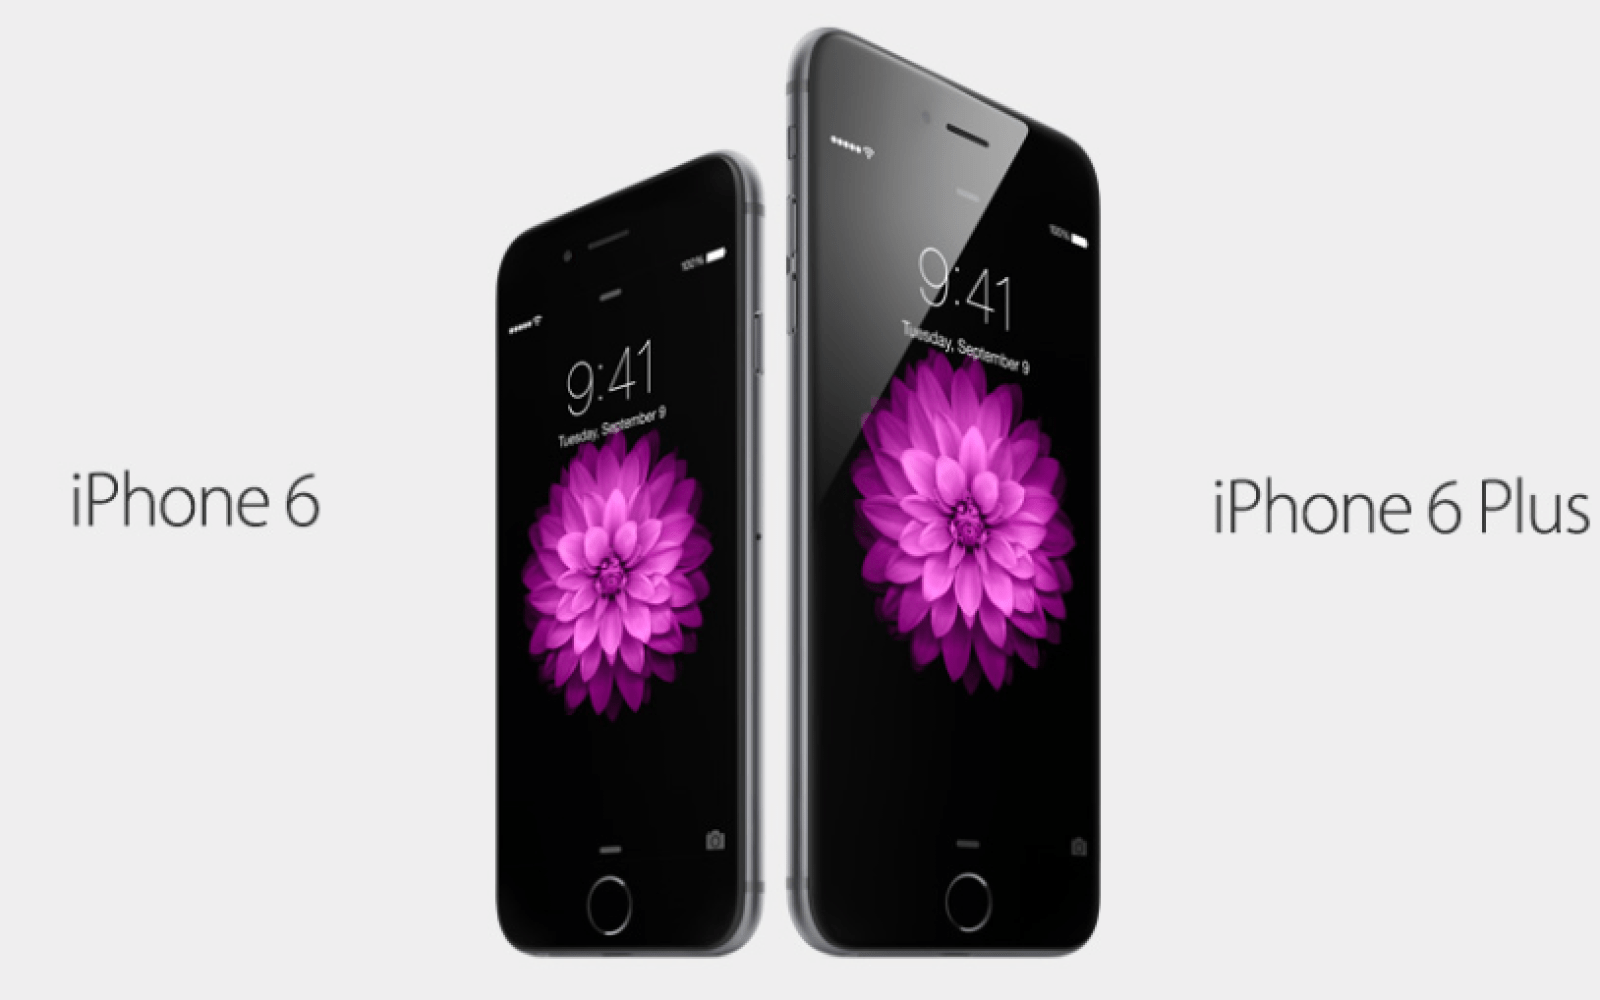 Review roundup: Everyone loves the iPhone 6 and 6 Plus